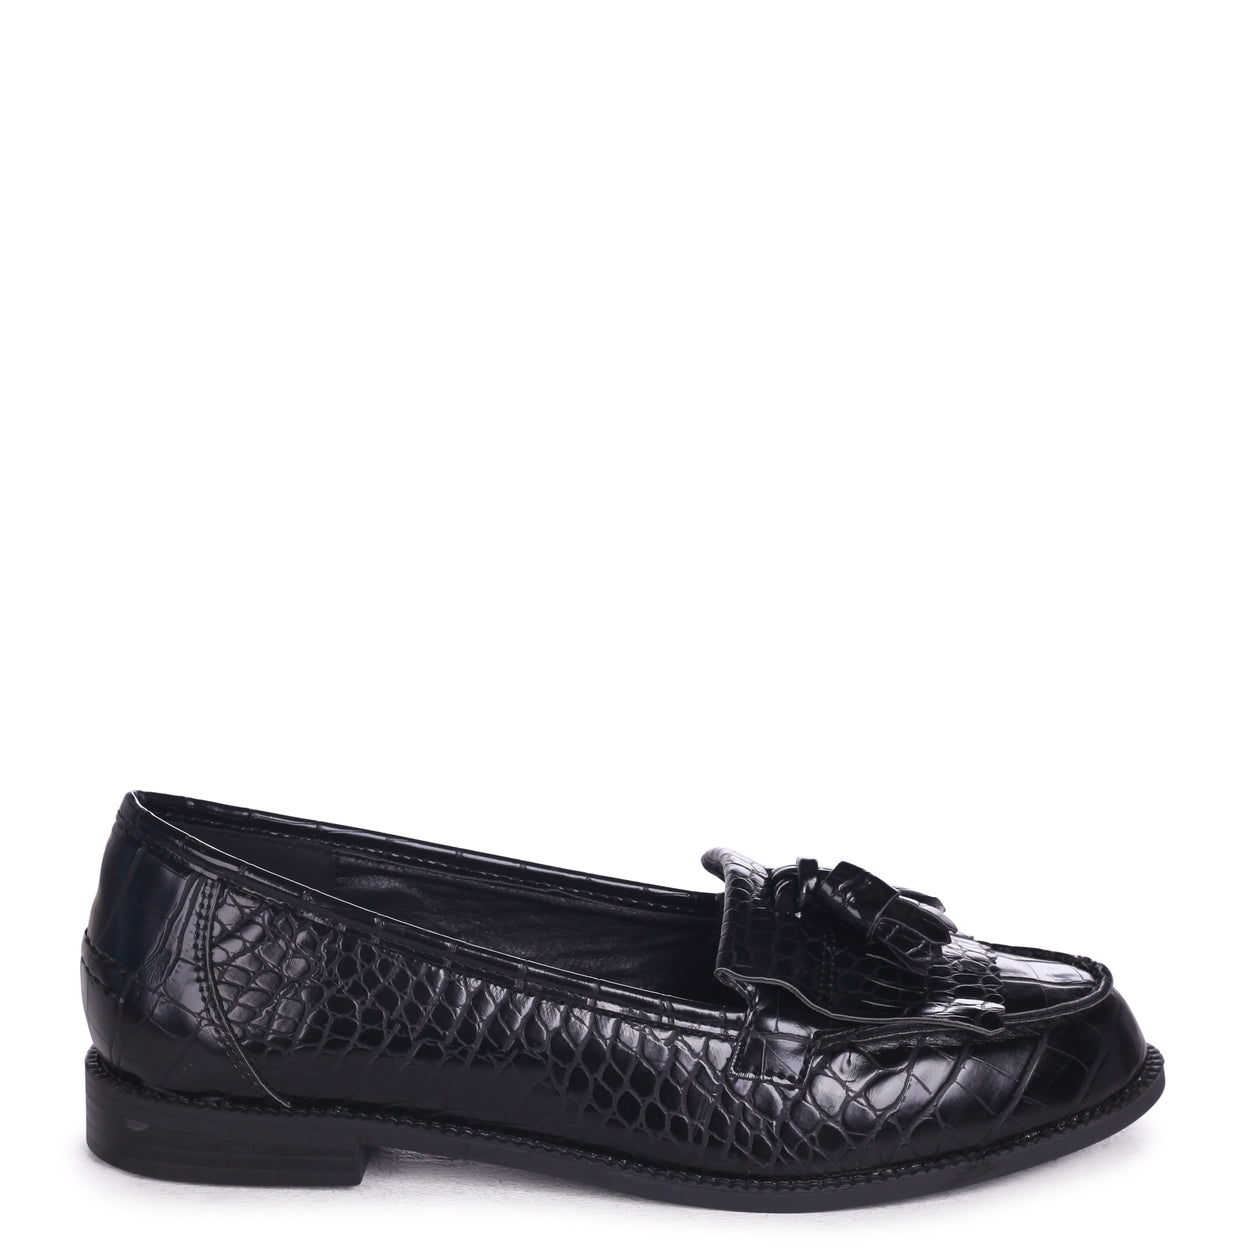 86c21495df4 Black Croc Faux Leather Classic Slip On Loafer – Linzi